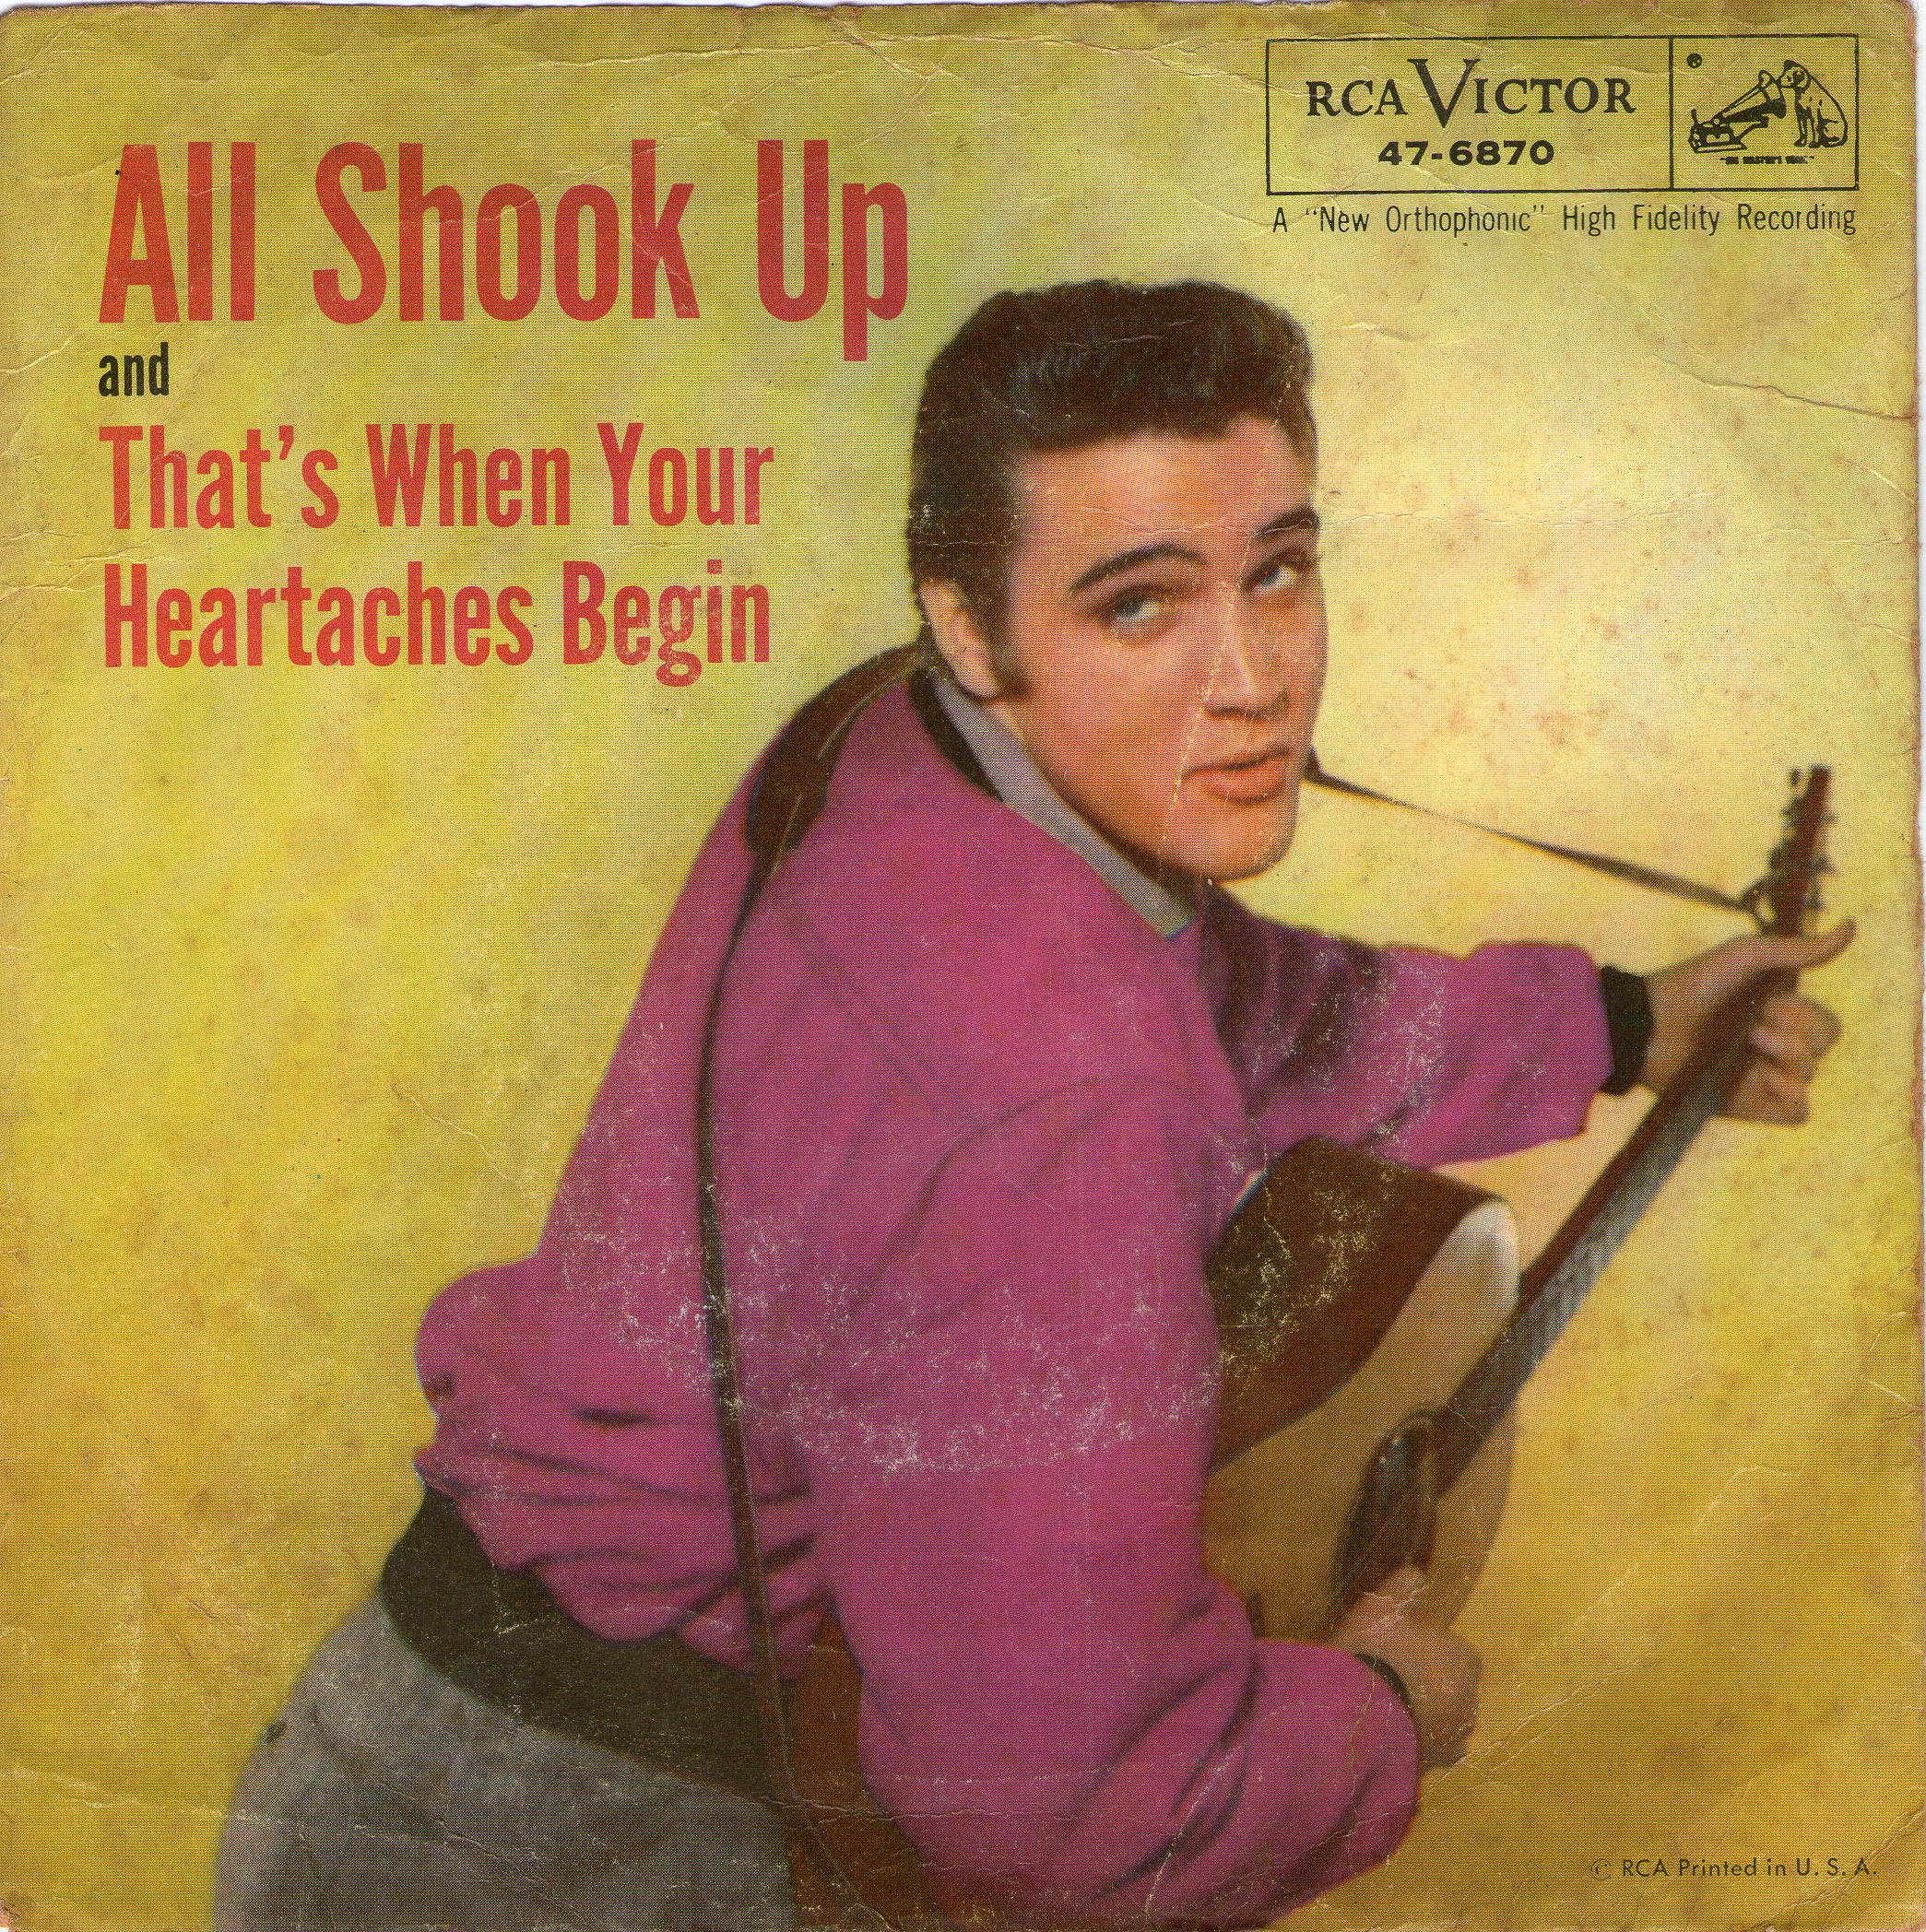 All Shook Up / That's When Your Heartaches Begin Img1233ze1n